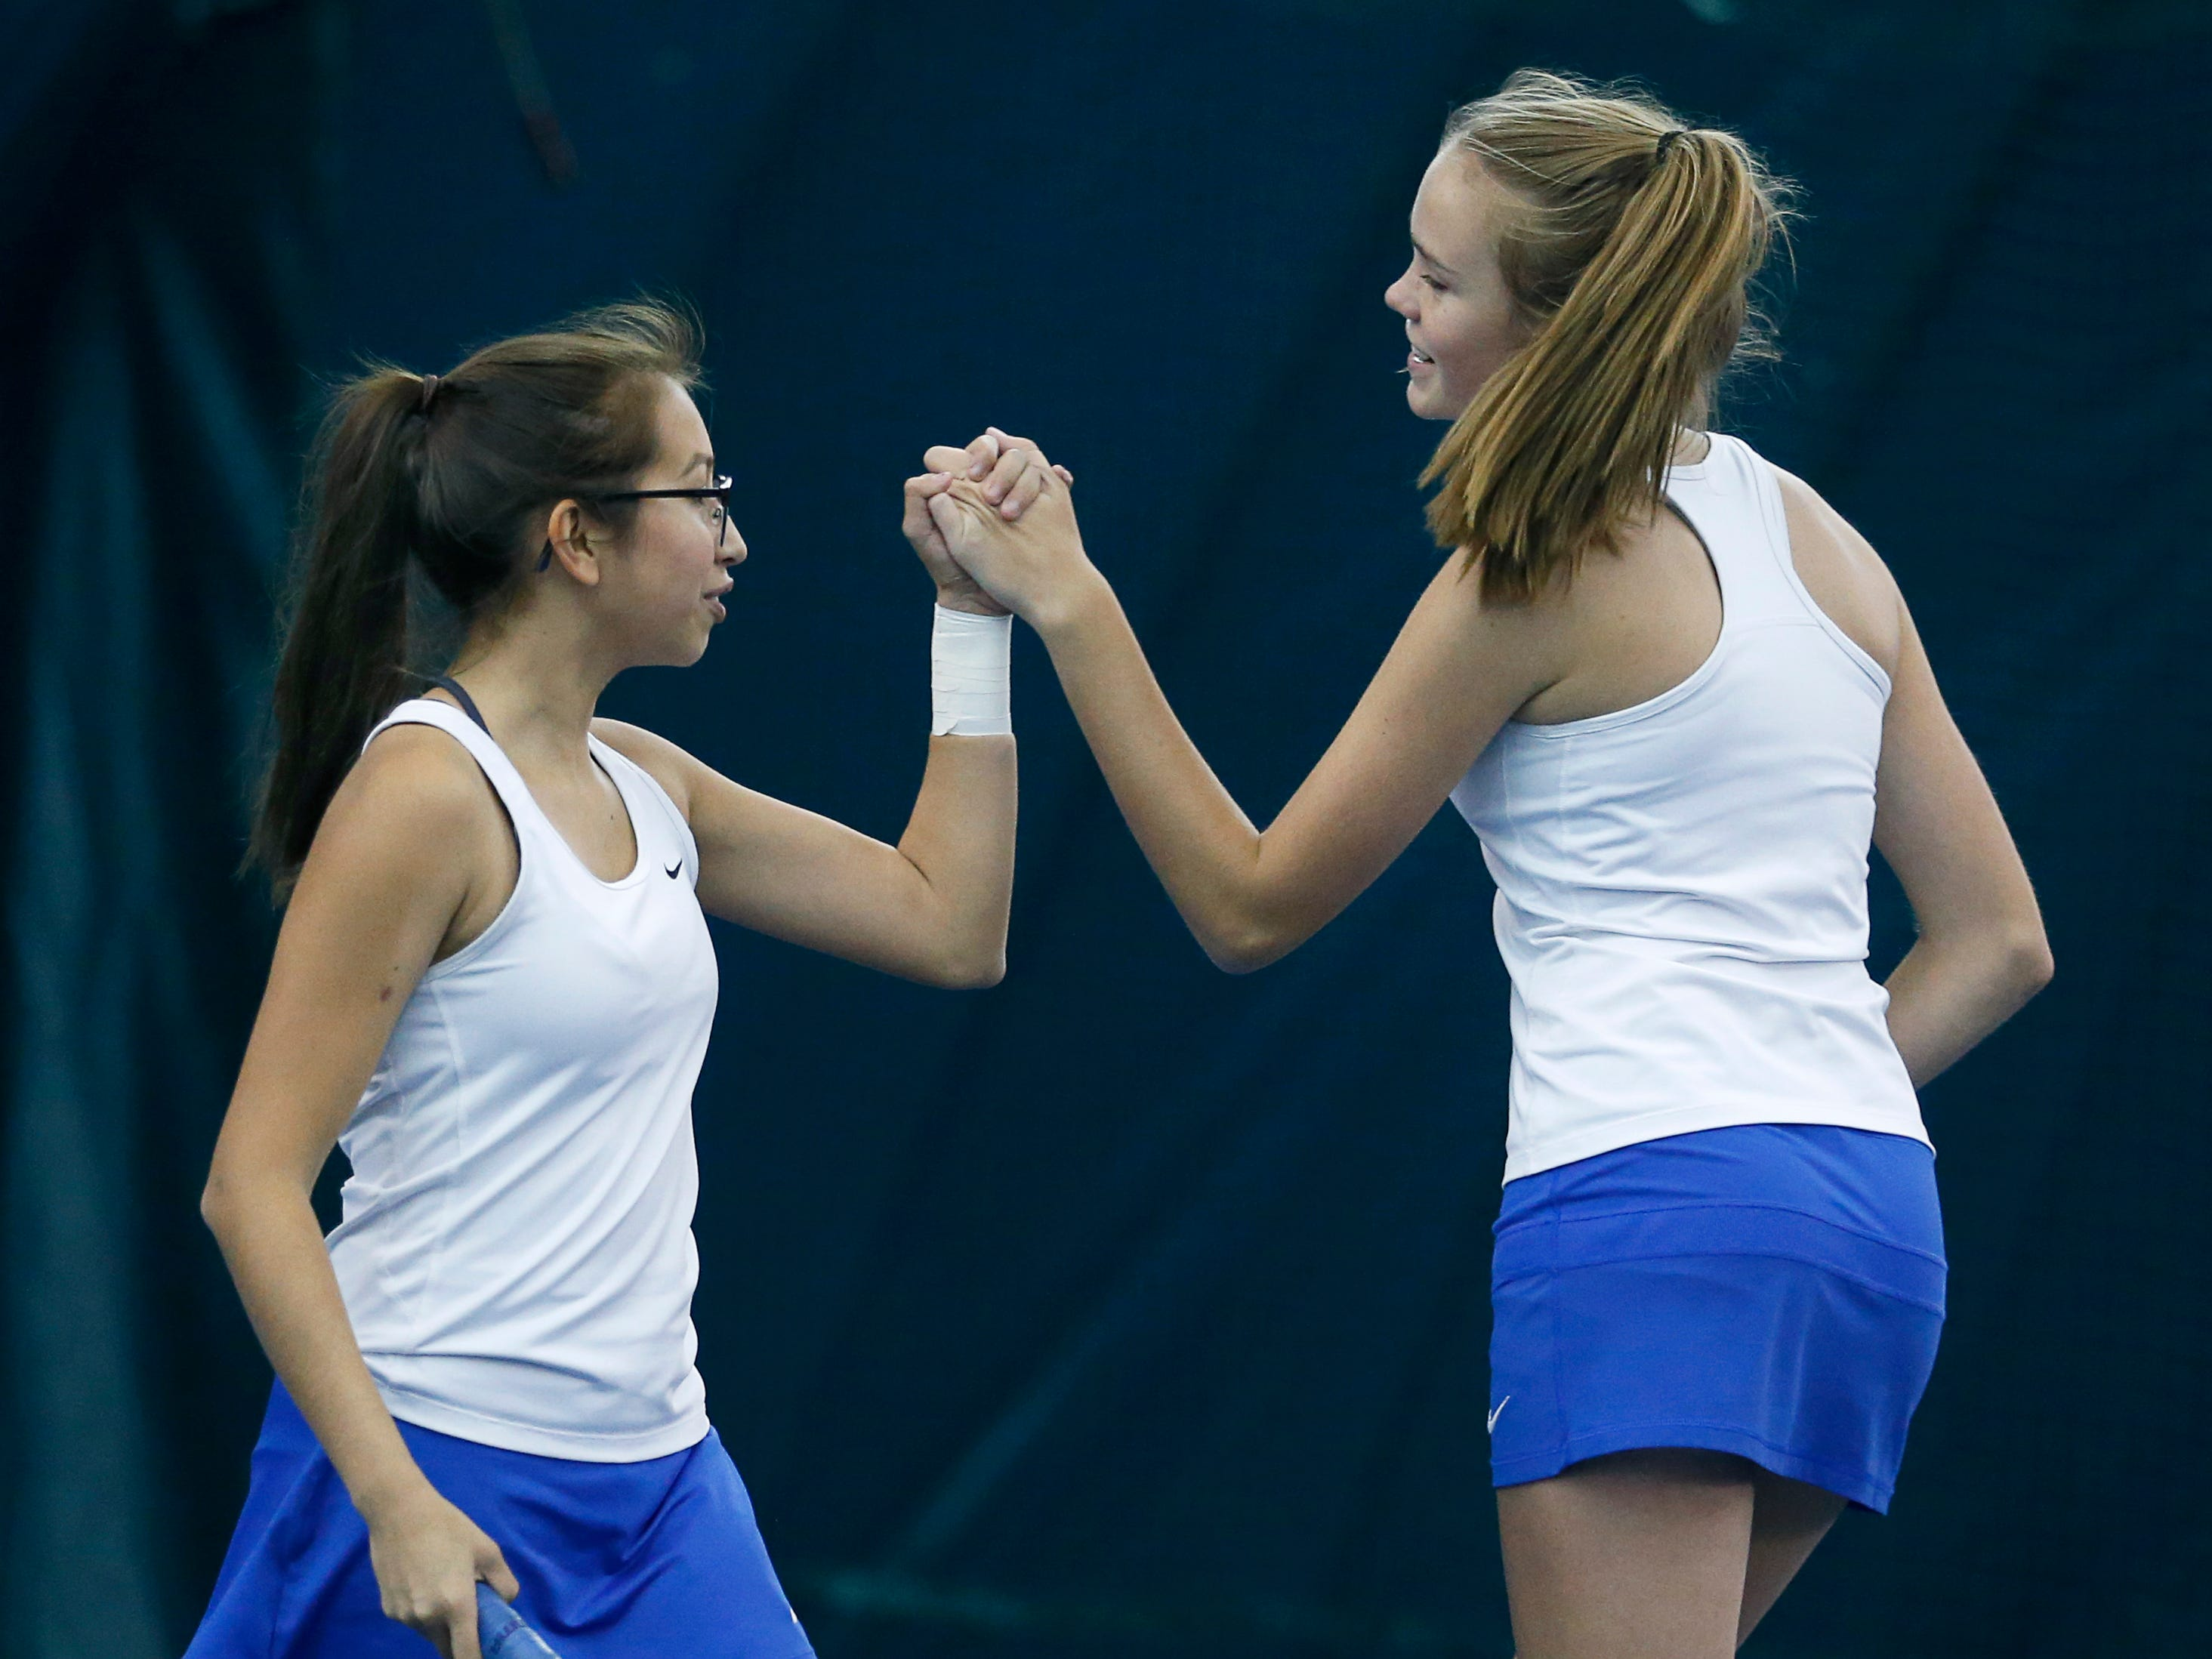 Webster's Stephanie Romero and Alexa Monrad high-five while playing for third place in the doubles of the Section V Tennis State Qualifiers at Mendon Racquet & Pool Club.